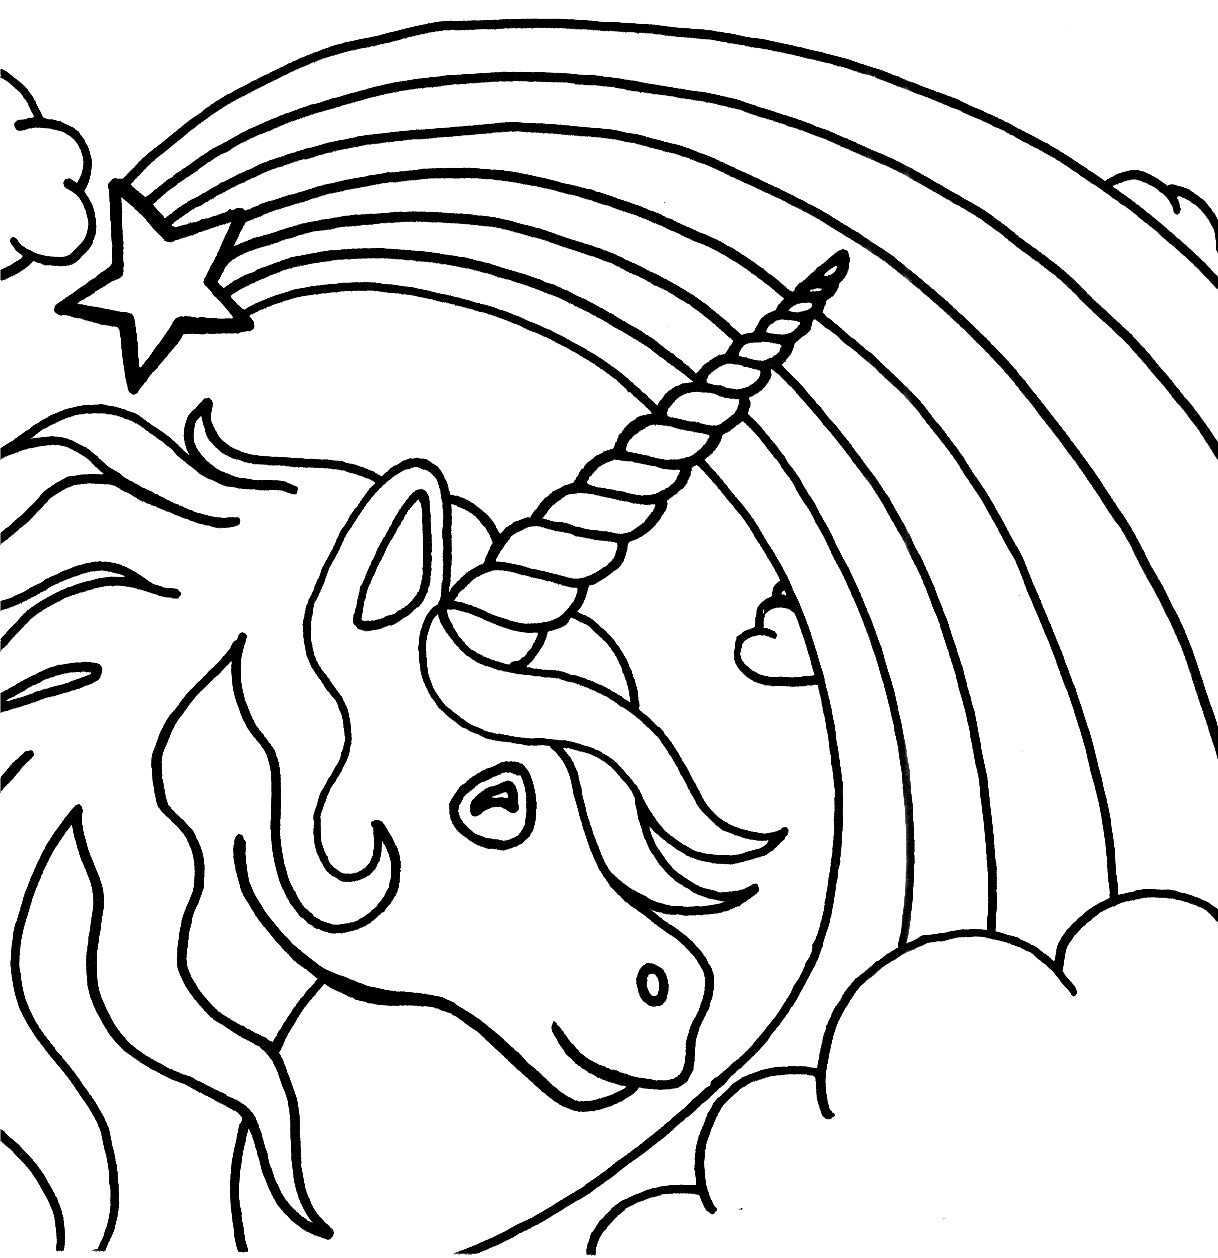 Childrens Printable Coloring Pages Delivered Colouring Free Fresh 13 - Free Printable Coloring Books For Toddlers